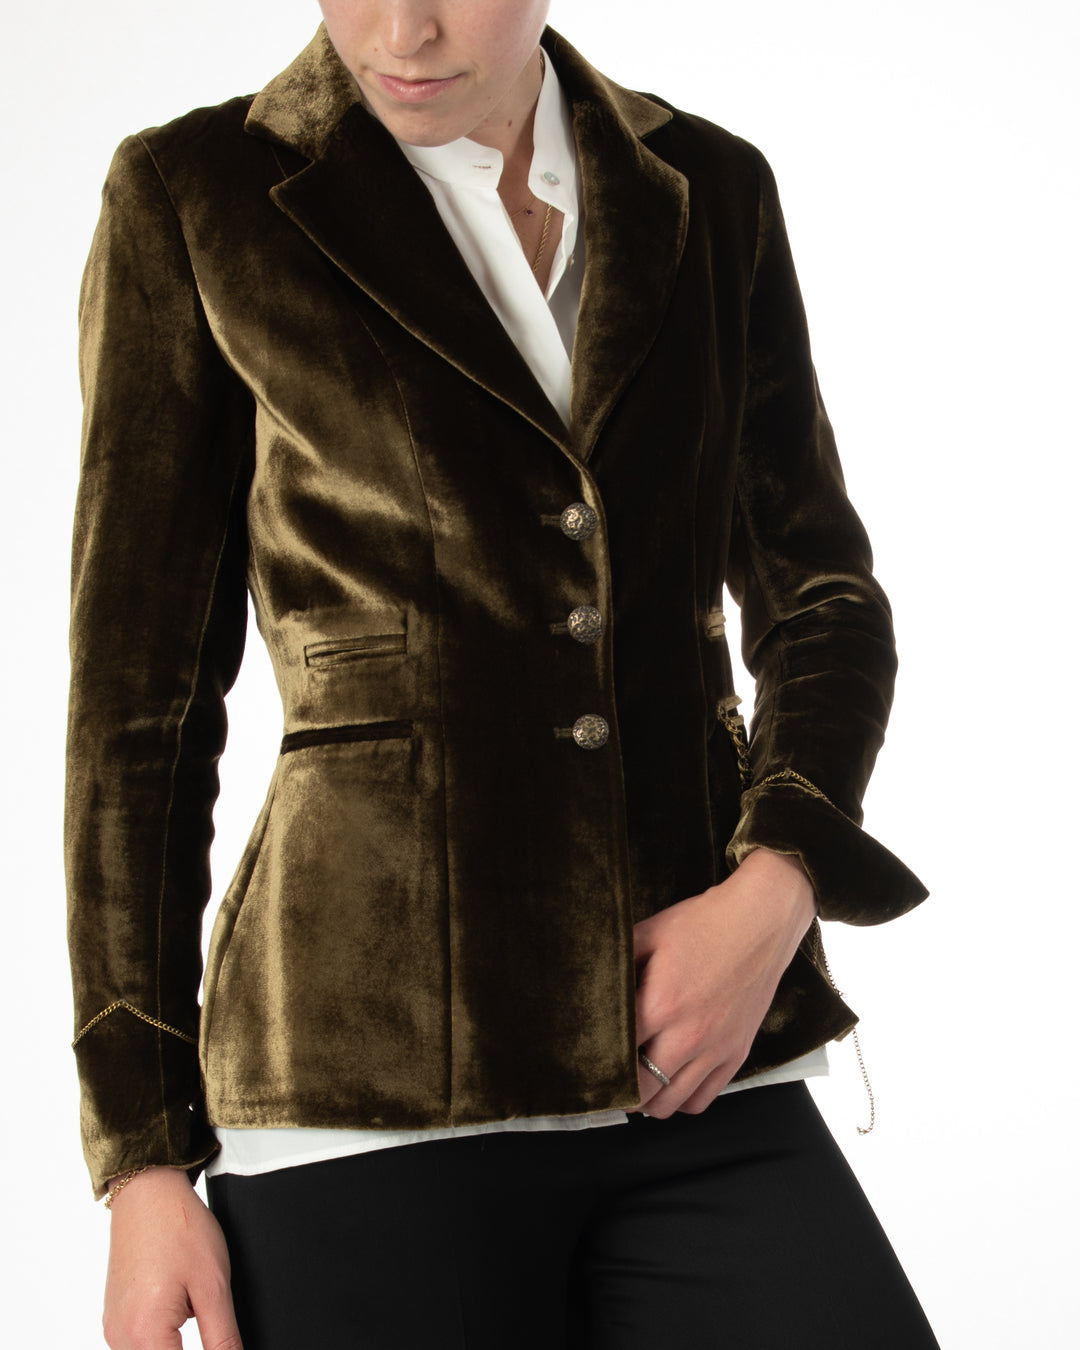 Mariane Rock Silk Velvet Jacket